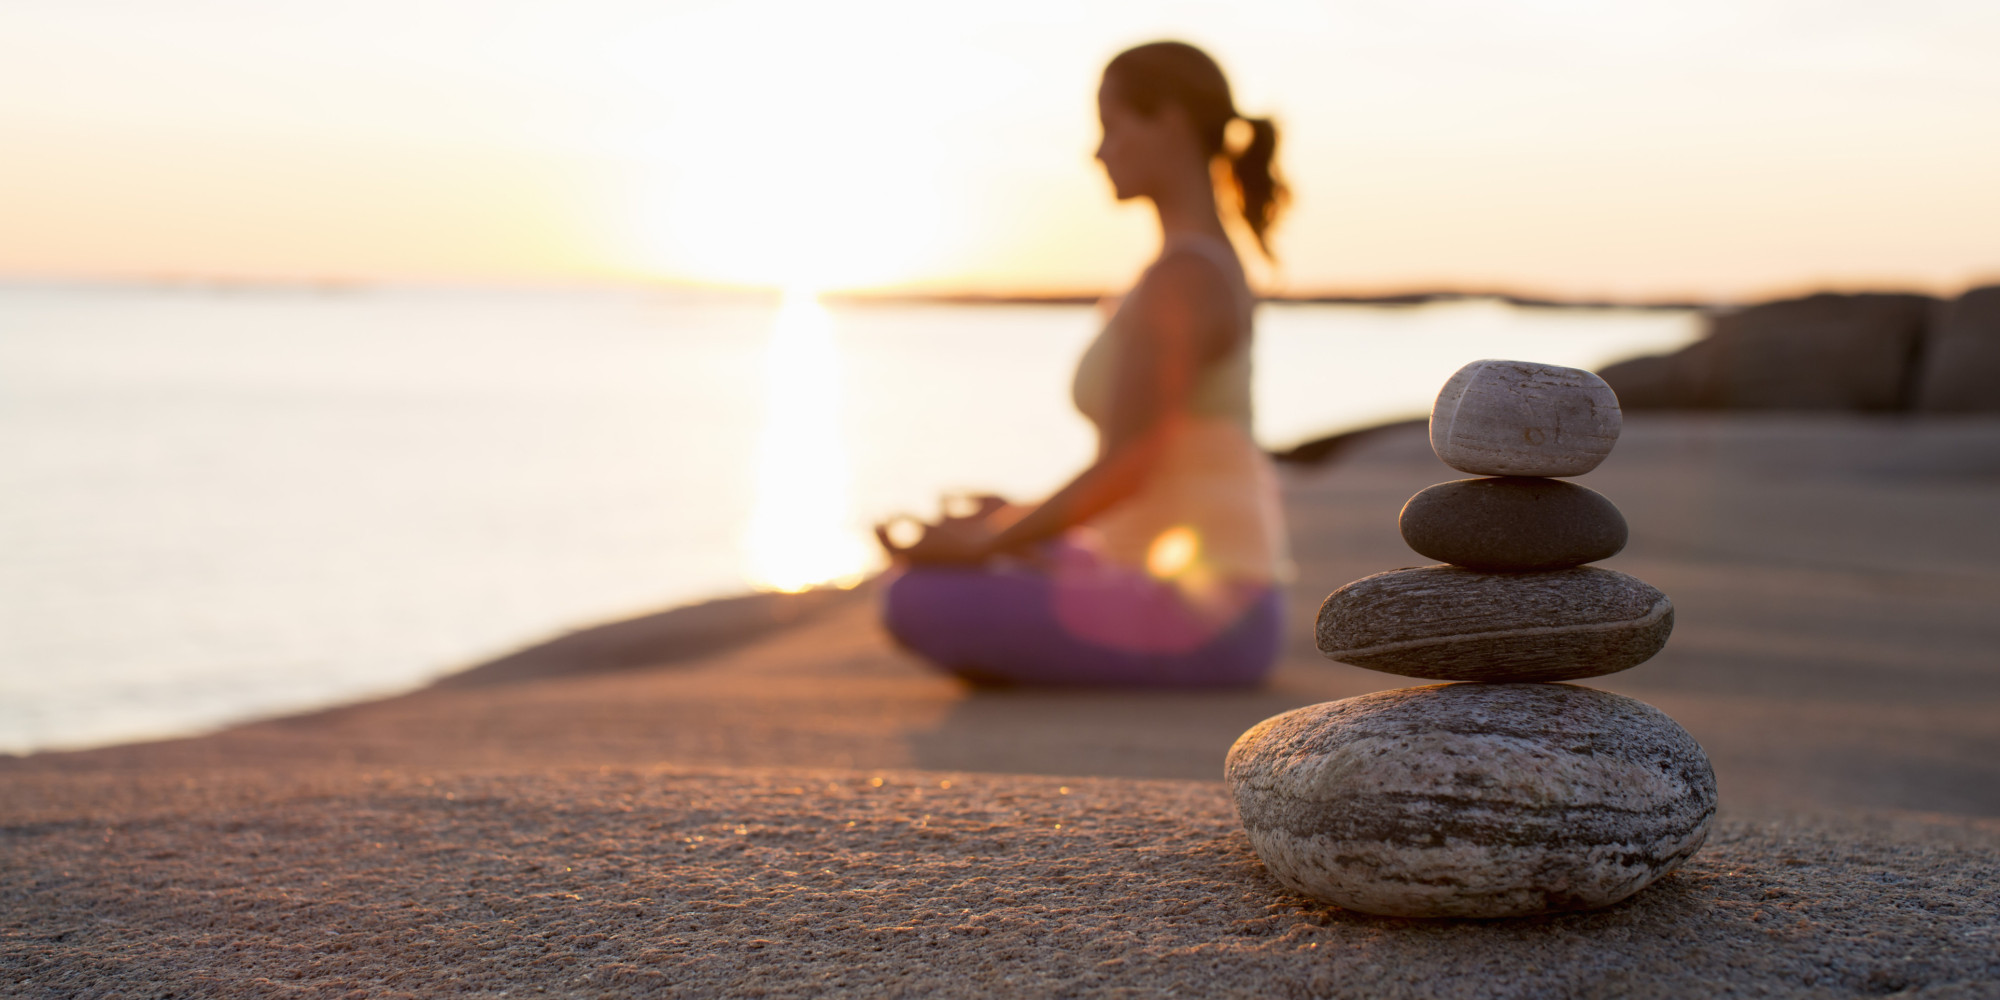 Morning Yoga and Meditation. - To wake the body up and reset our mind for the upcoming day.